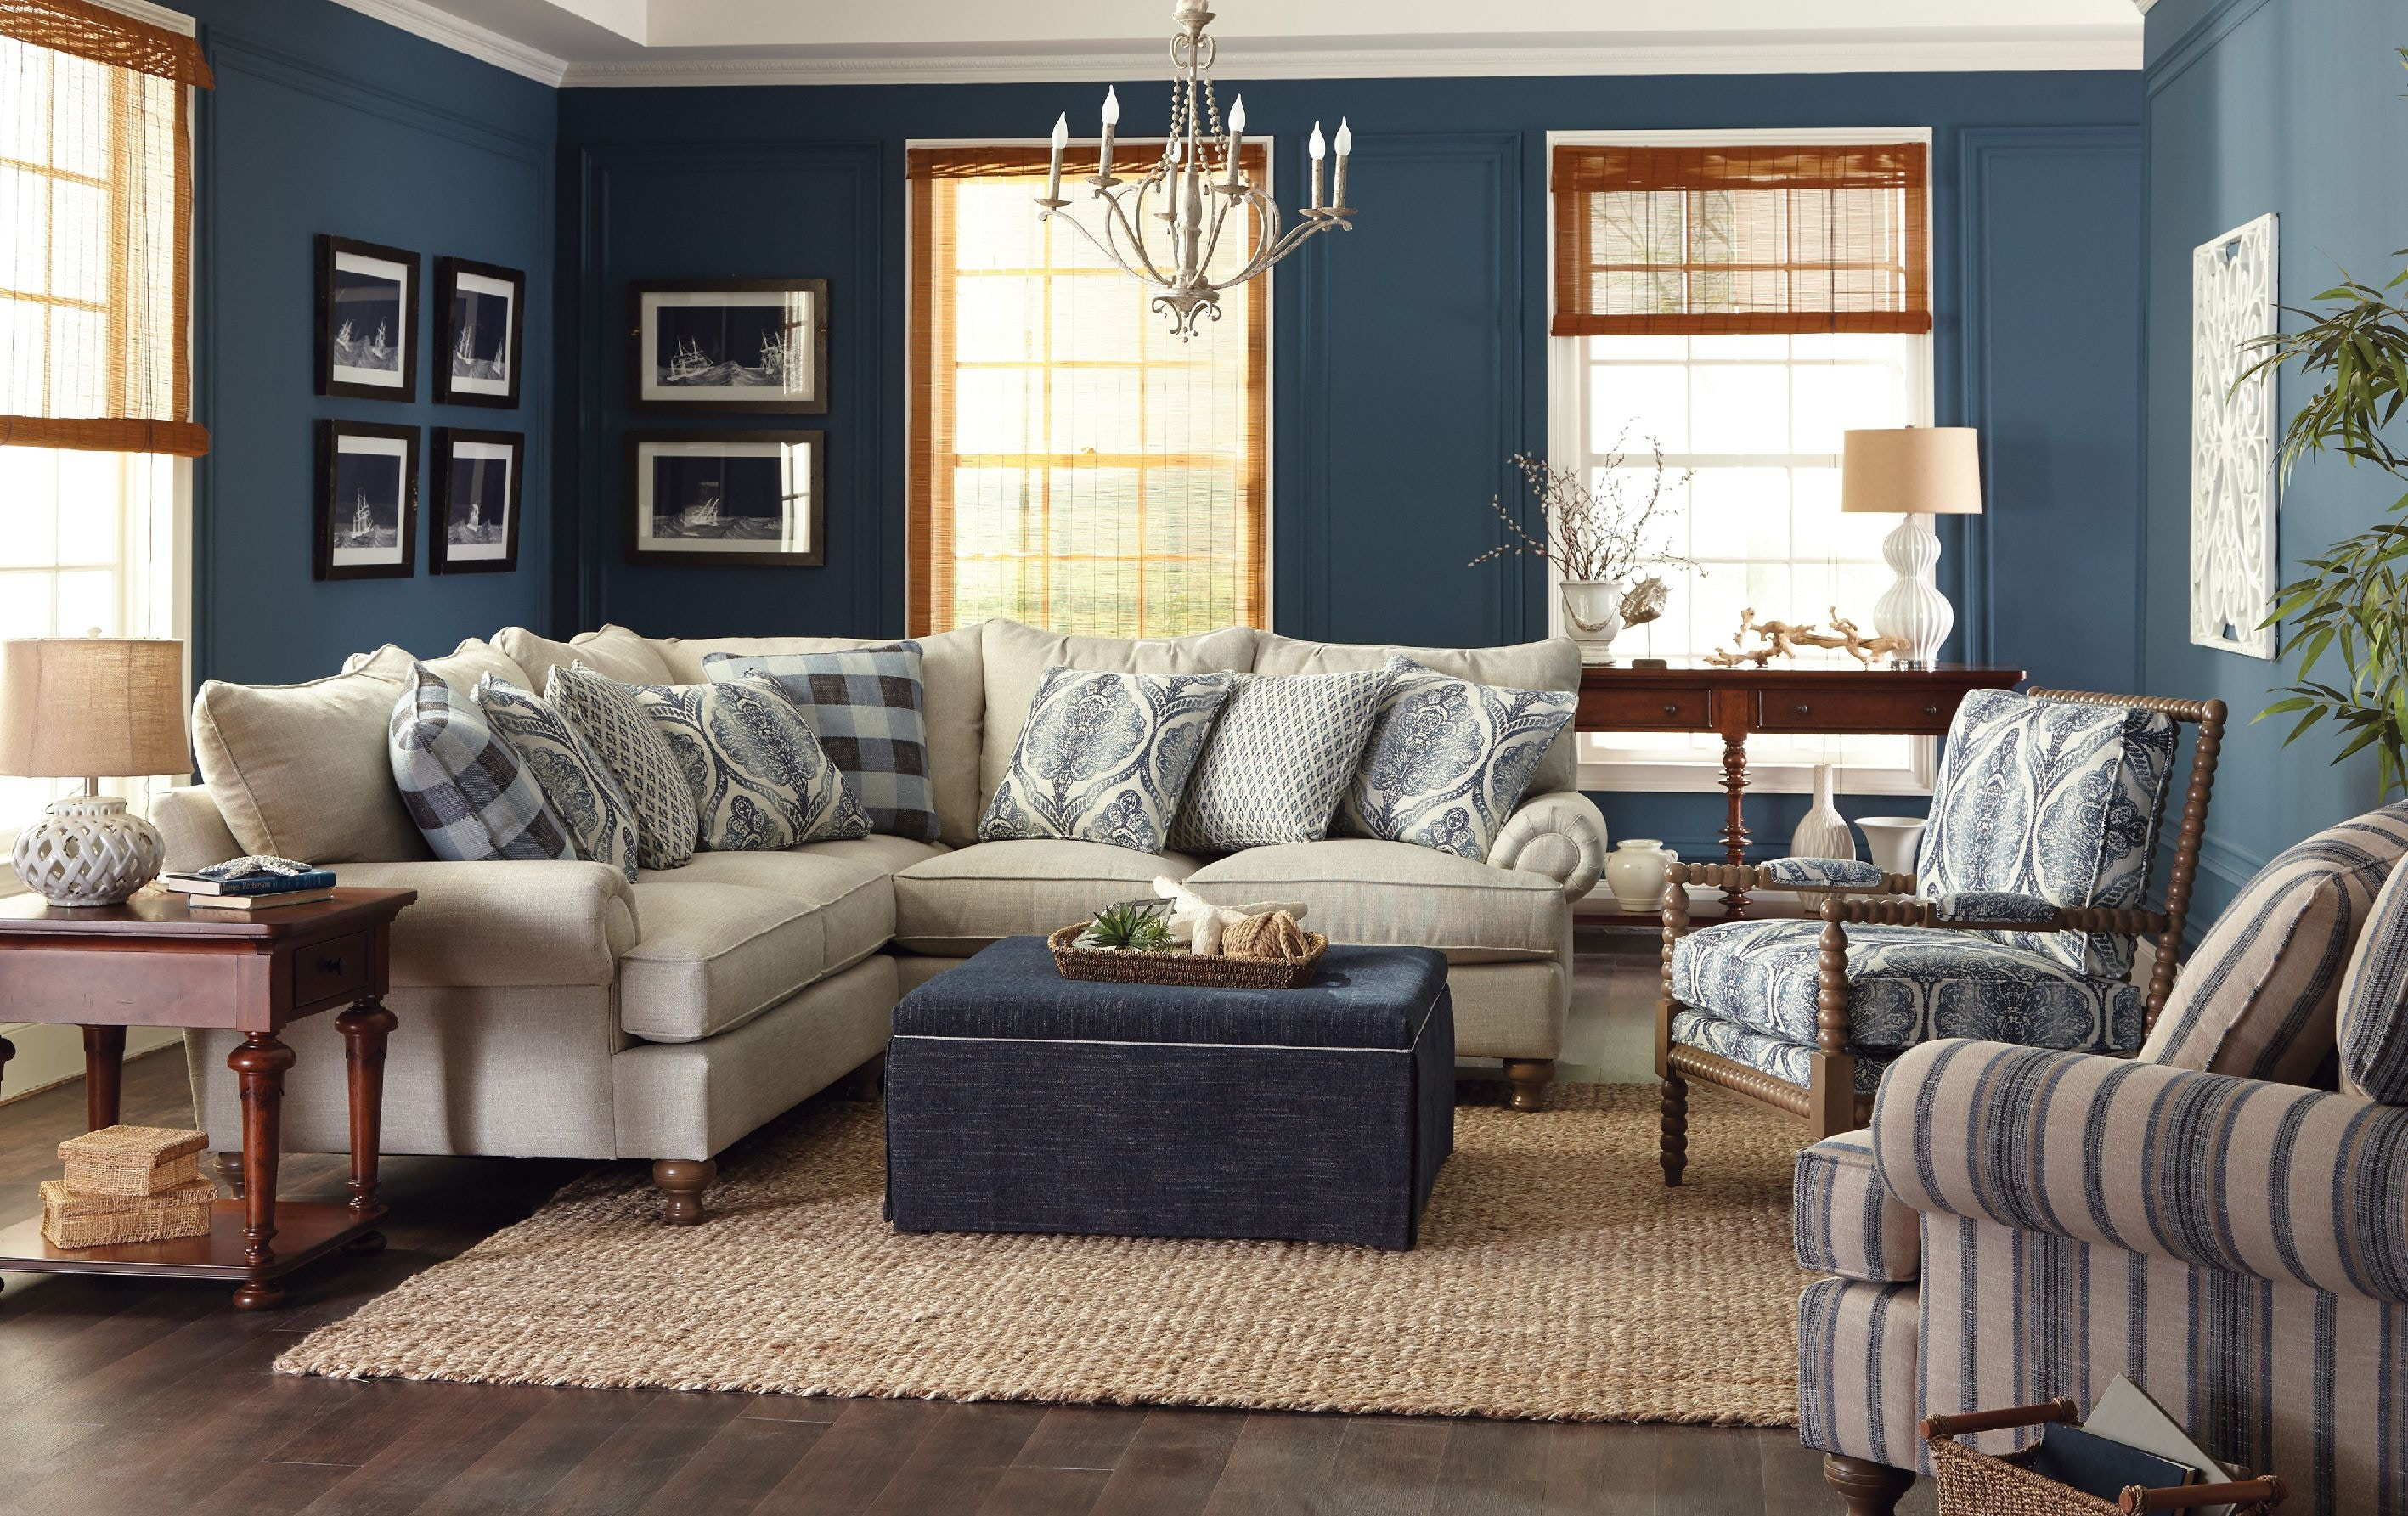 Paula deen by craftmaster living room sectional p7117bd sect craftmaster hiddenite nc for Encore home designs by craftmaster